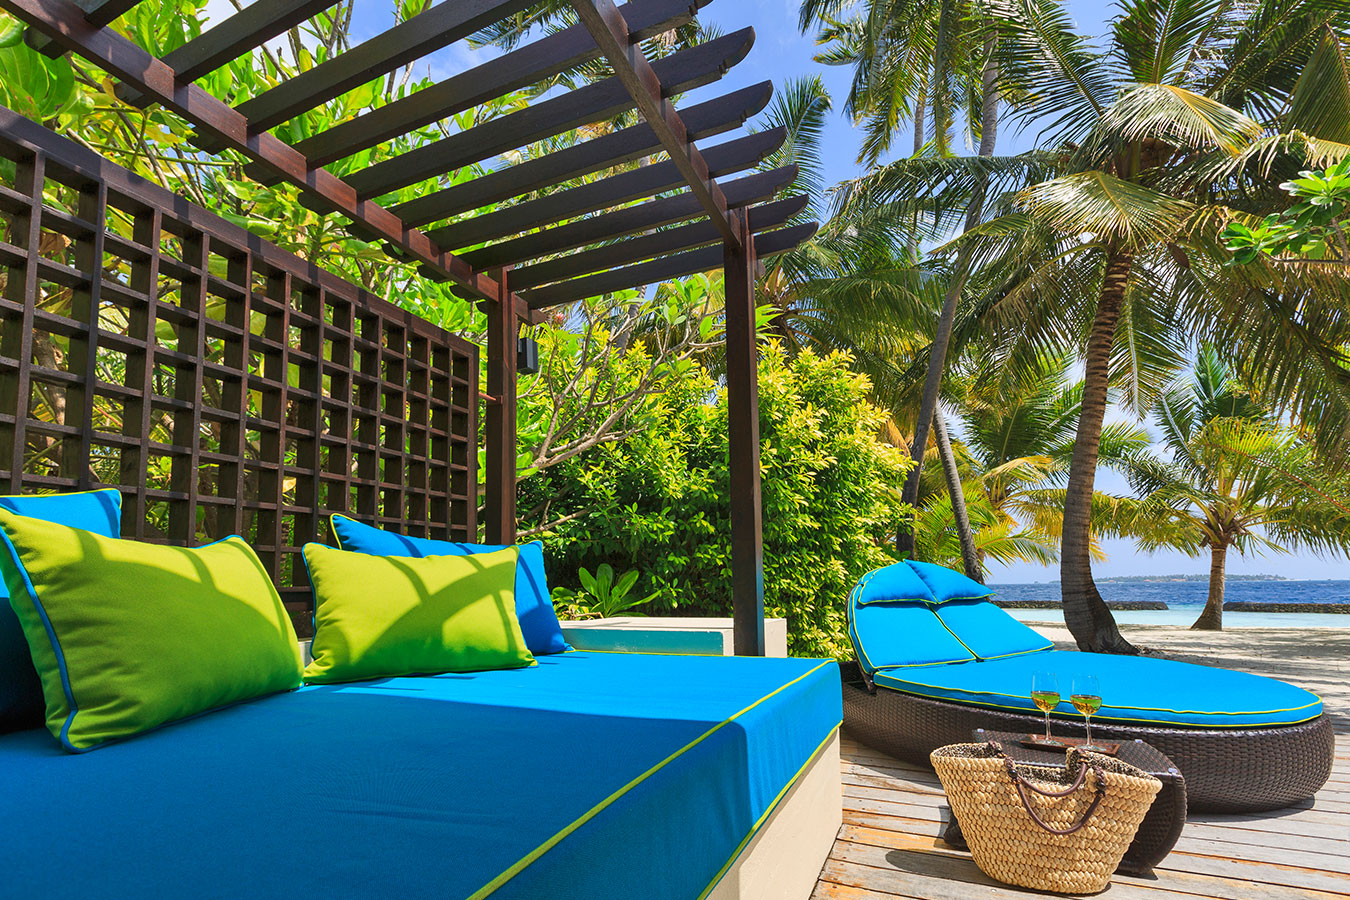 Kurumba Maldives - Royal Residence Balcony and View  Image - Maldives Resorts Pool Villa